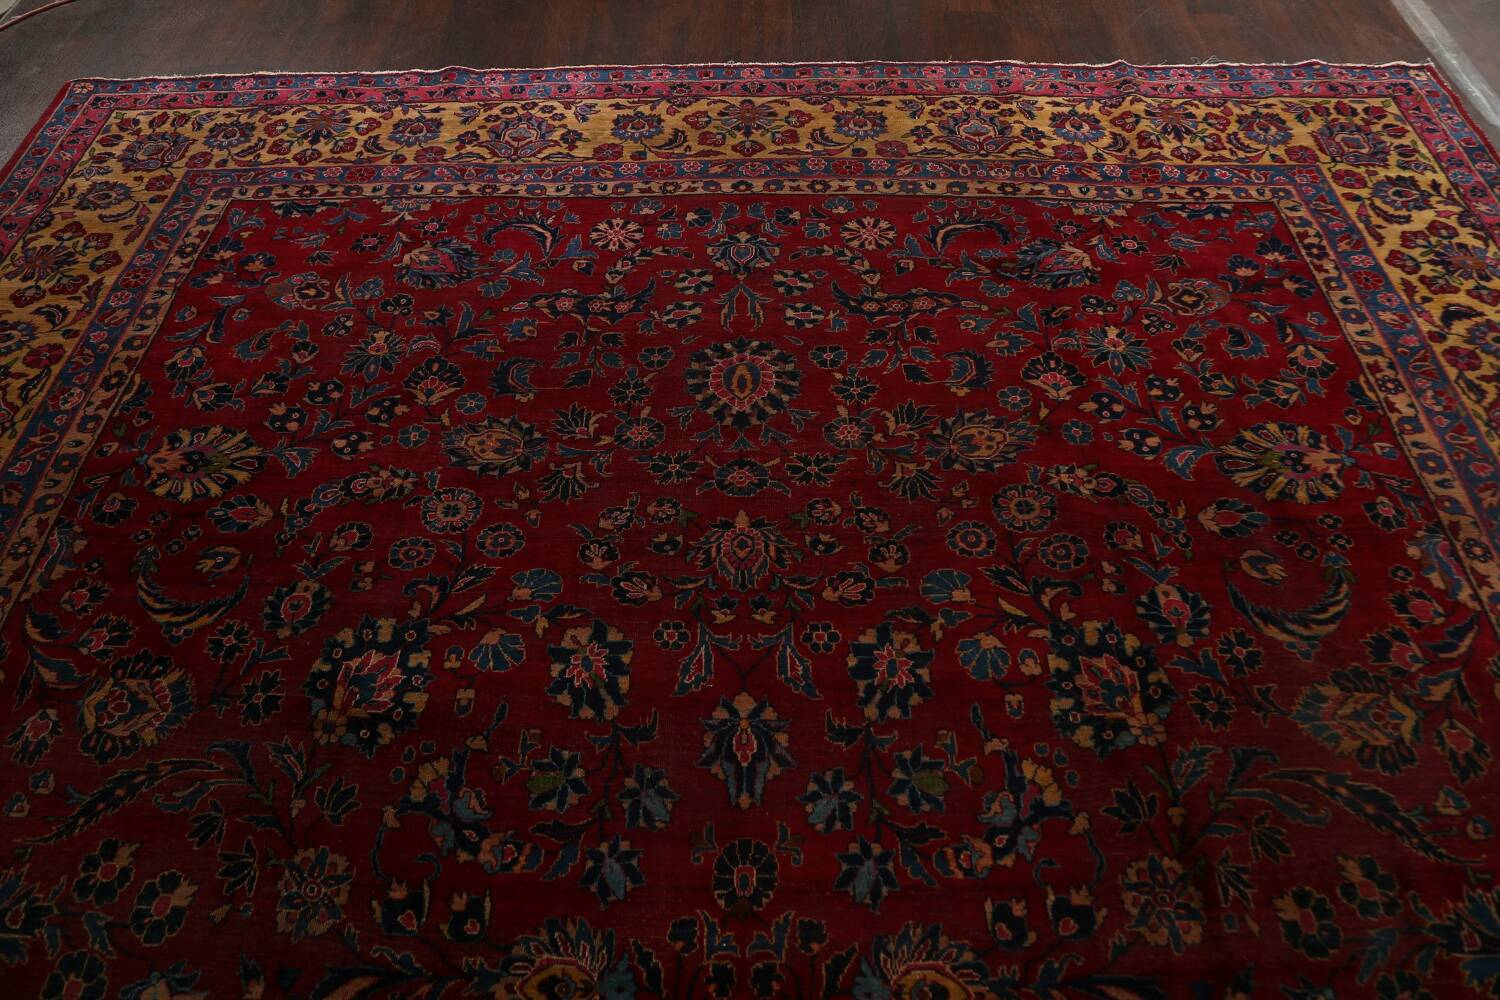 Pre-1900 Antique Vegetable Dye Sarouk Persian Area Rug 11x15 image 12